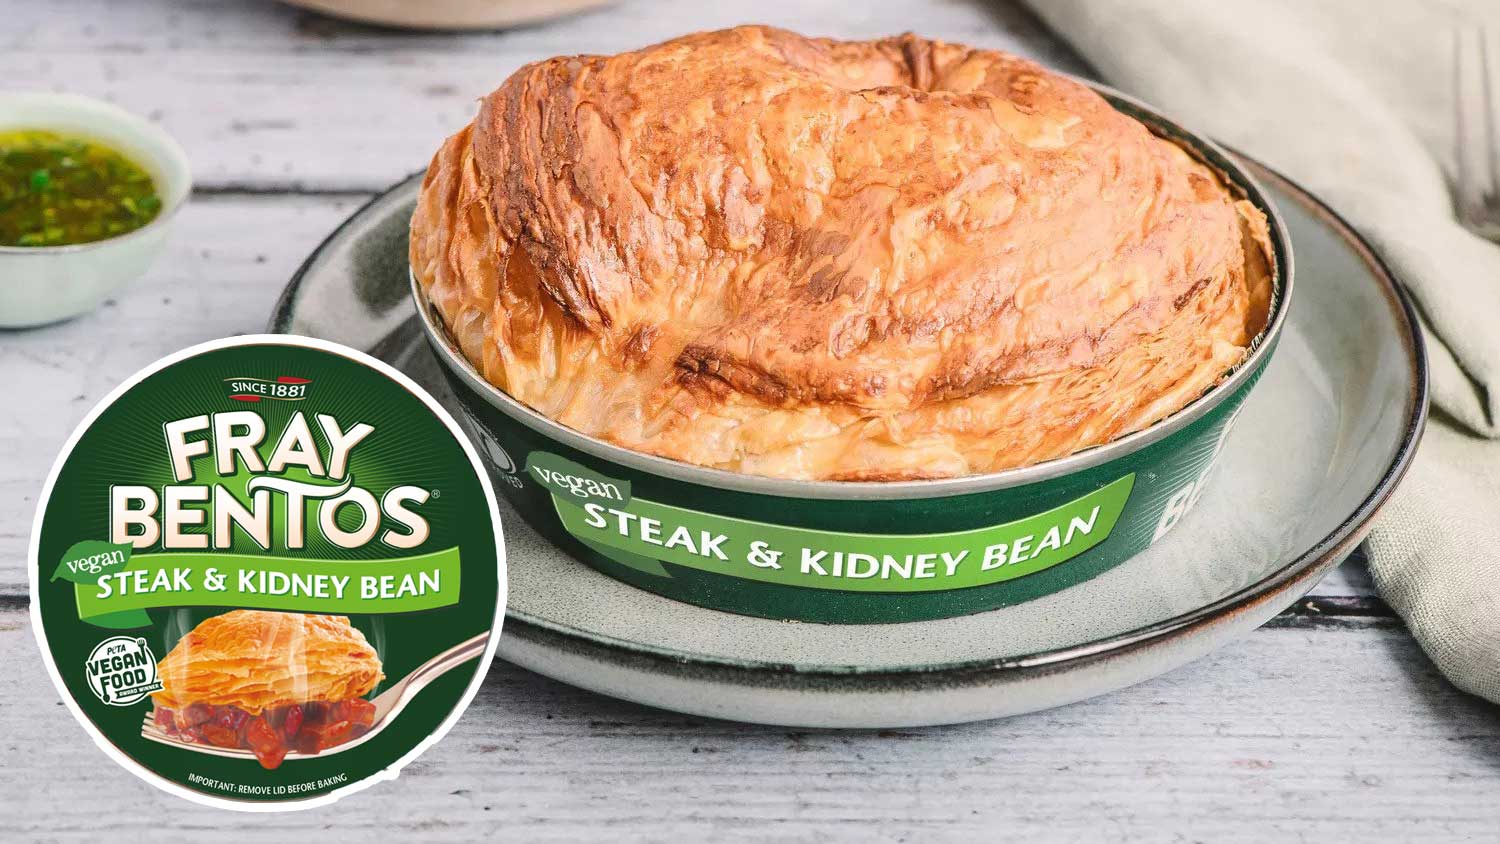 Fray Bentos Just Launched Vegan Steak and Kidney Pies